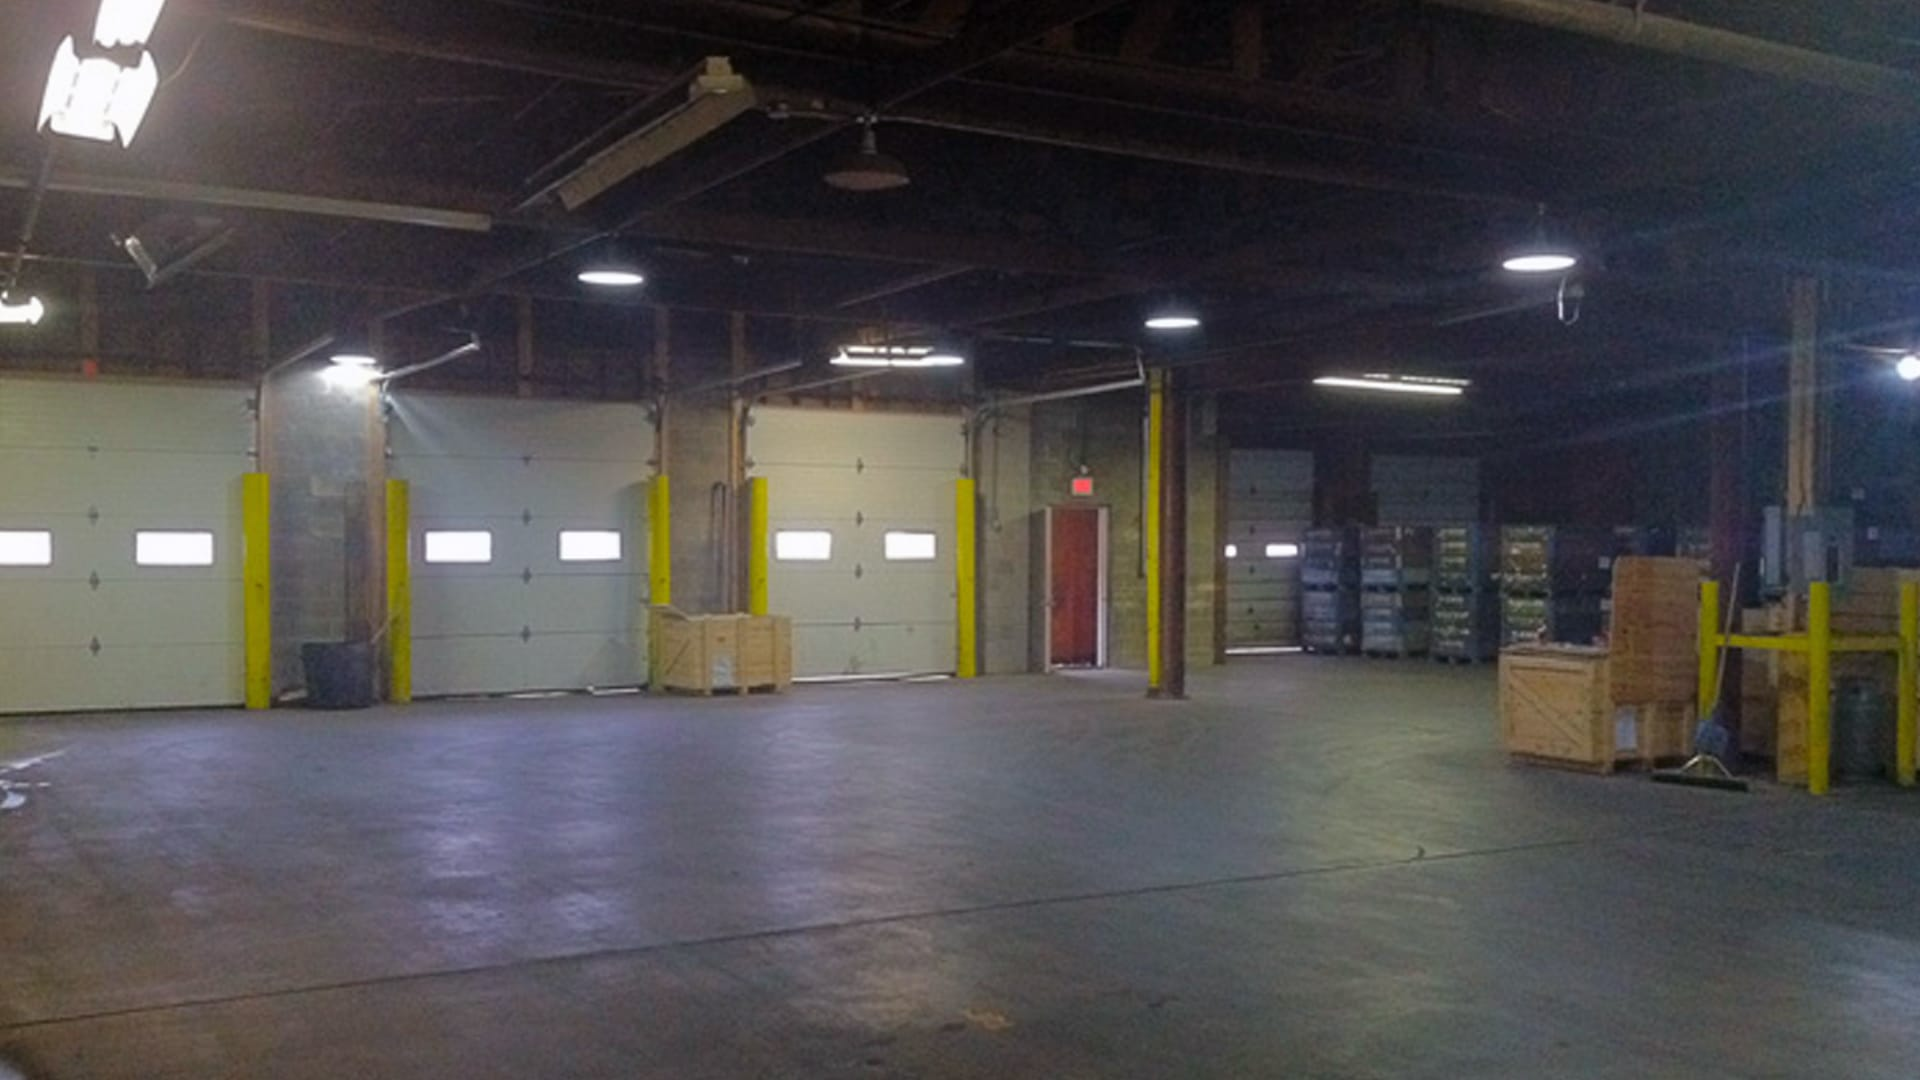 Route 80 Express warehouse interior